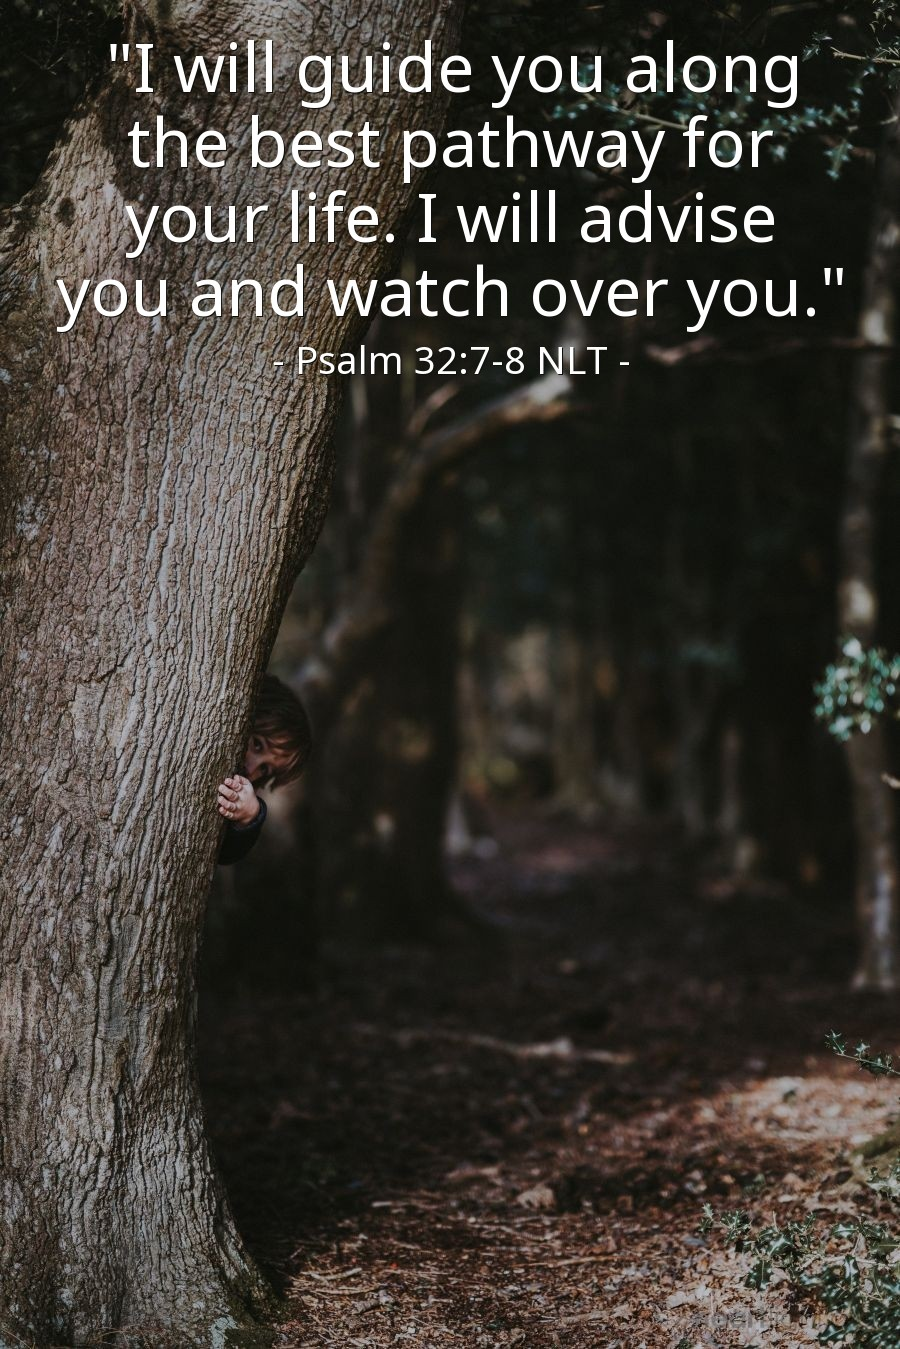 """Illustration of Psalm 32:7-8 NLT — For you are my hiding place; you protect me from trouble.  You surround me with songs of victory.  The Lord says, """"I will guide you along the best pathway for your life. I will advise you and watch over you."""""""